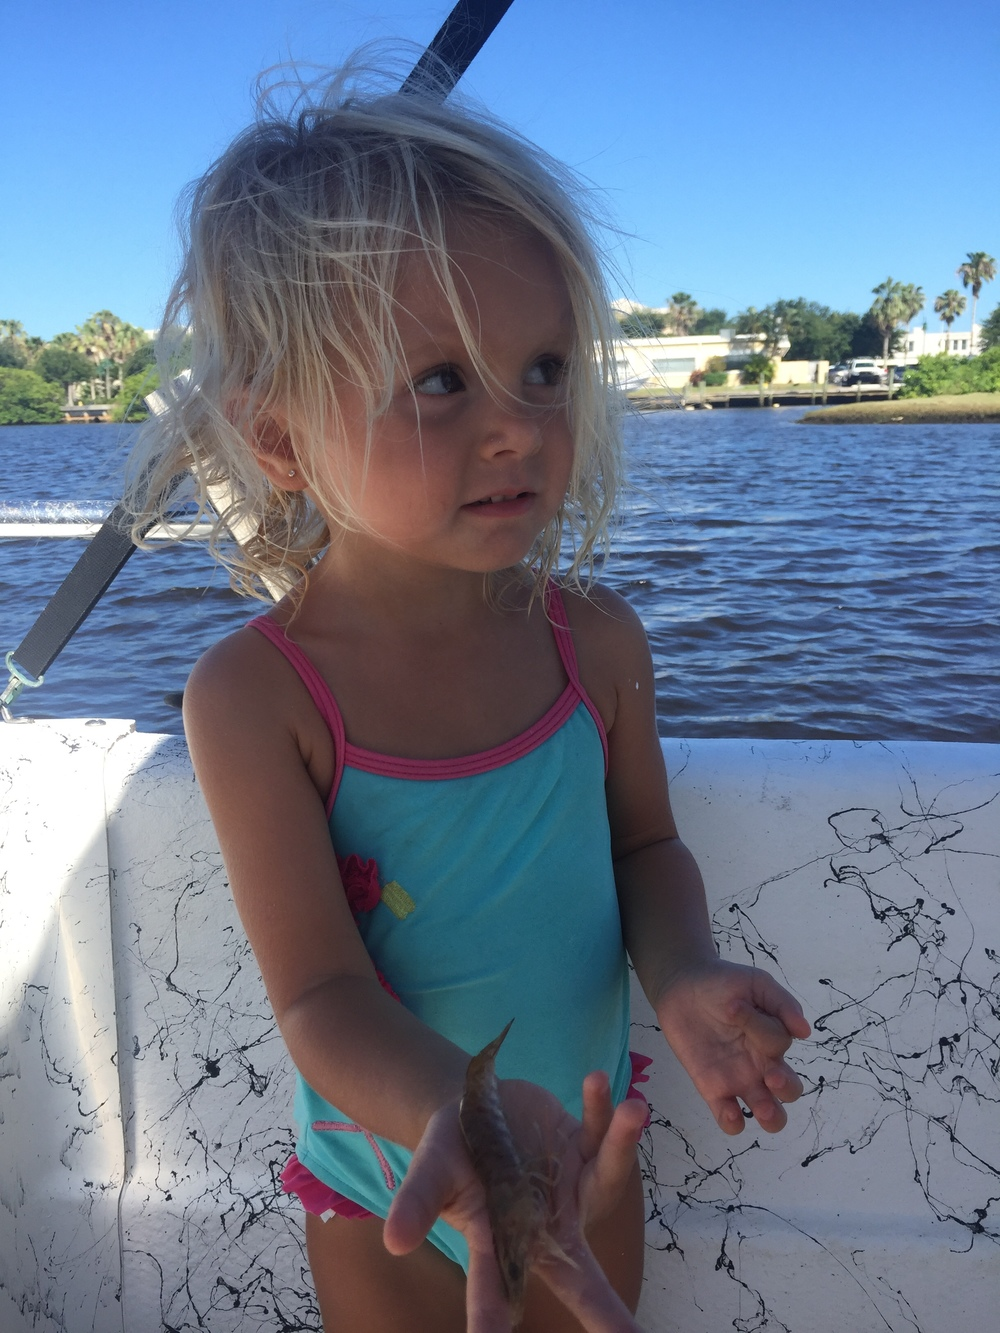 River Harrington, little fishing girl. Vero Beach, Florida. Florida Boat Rentals.